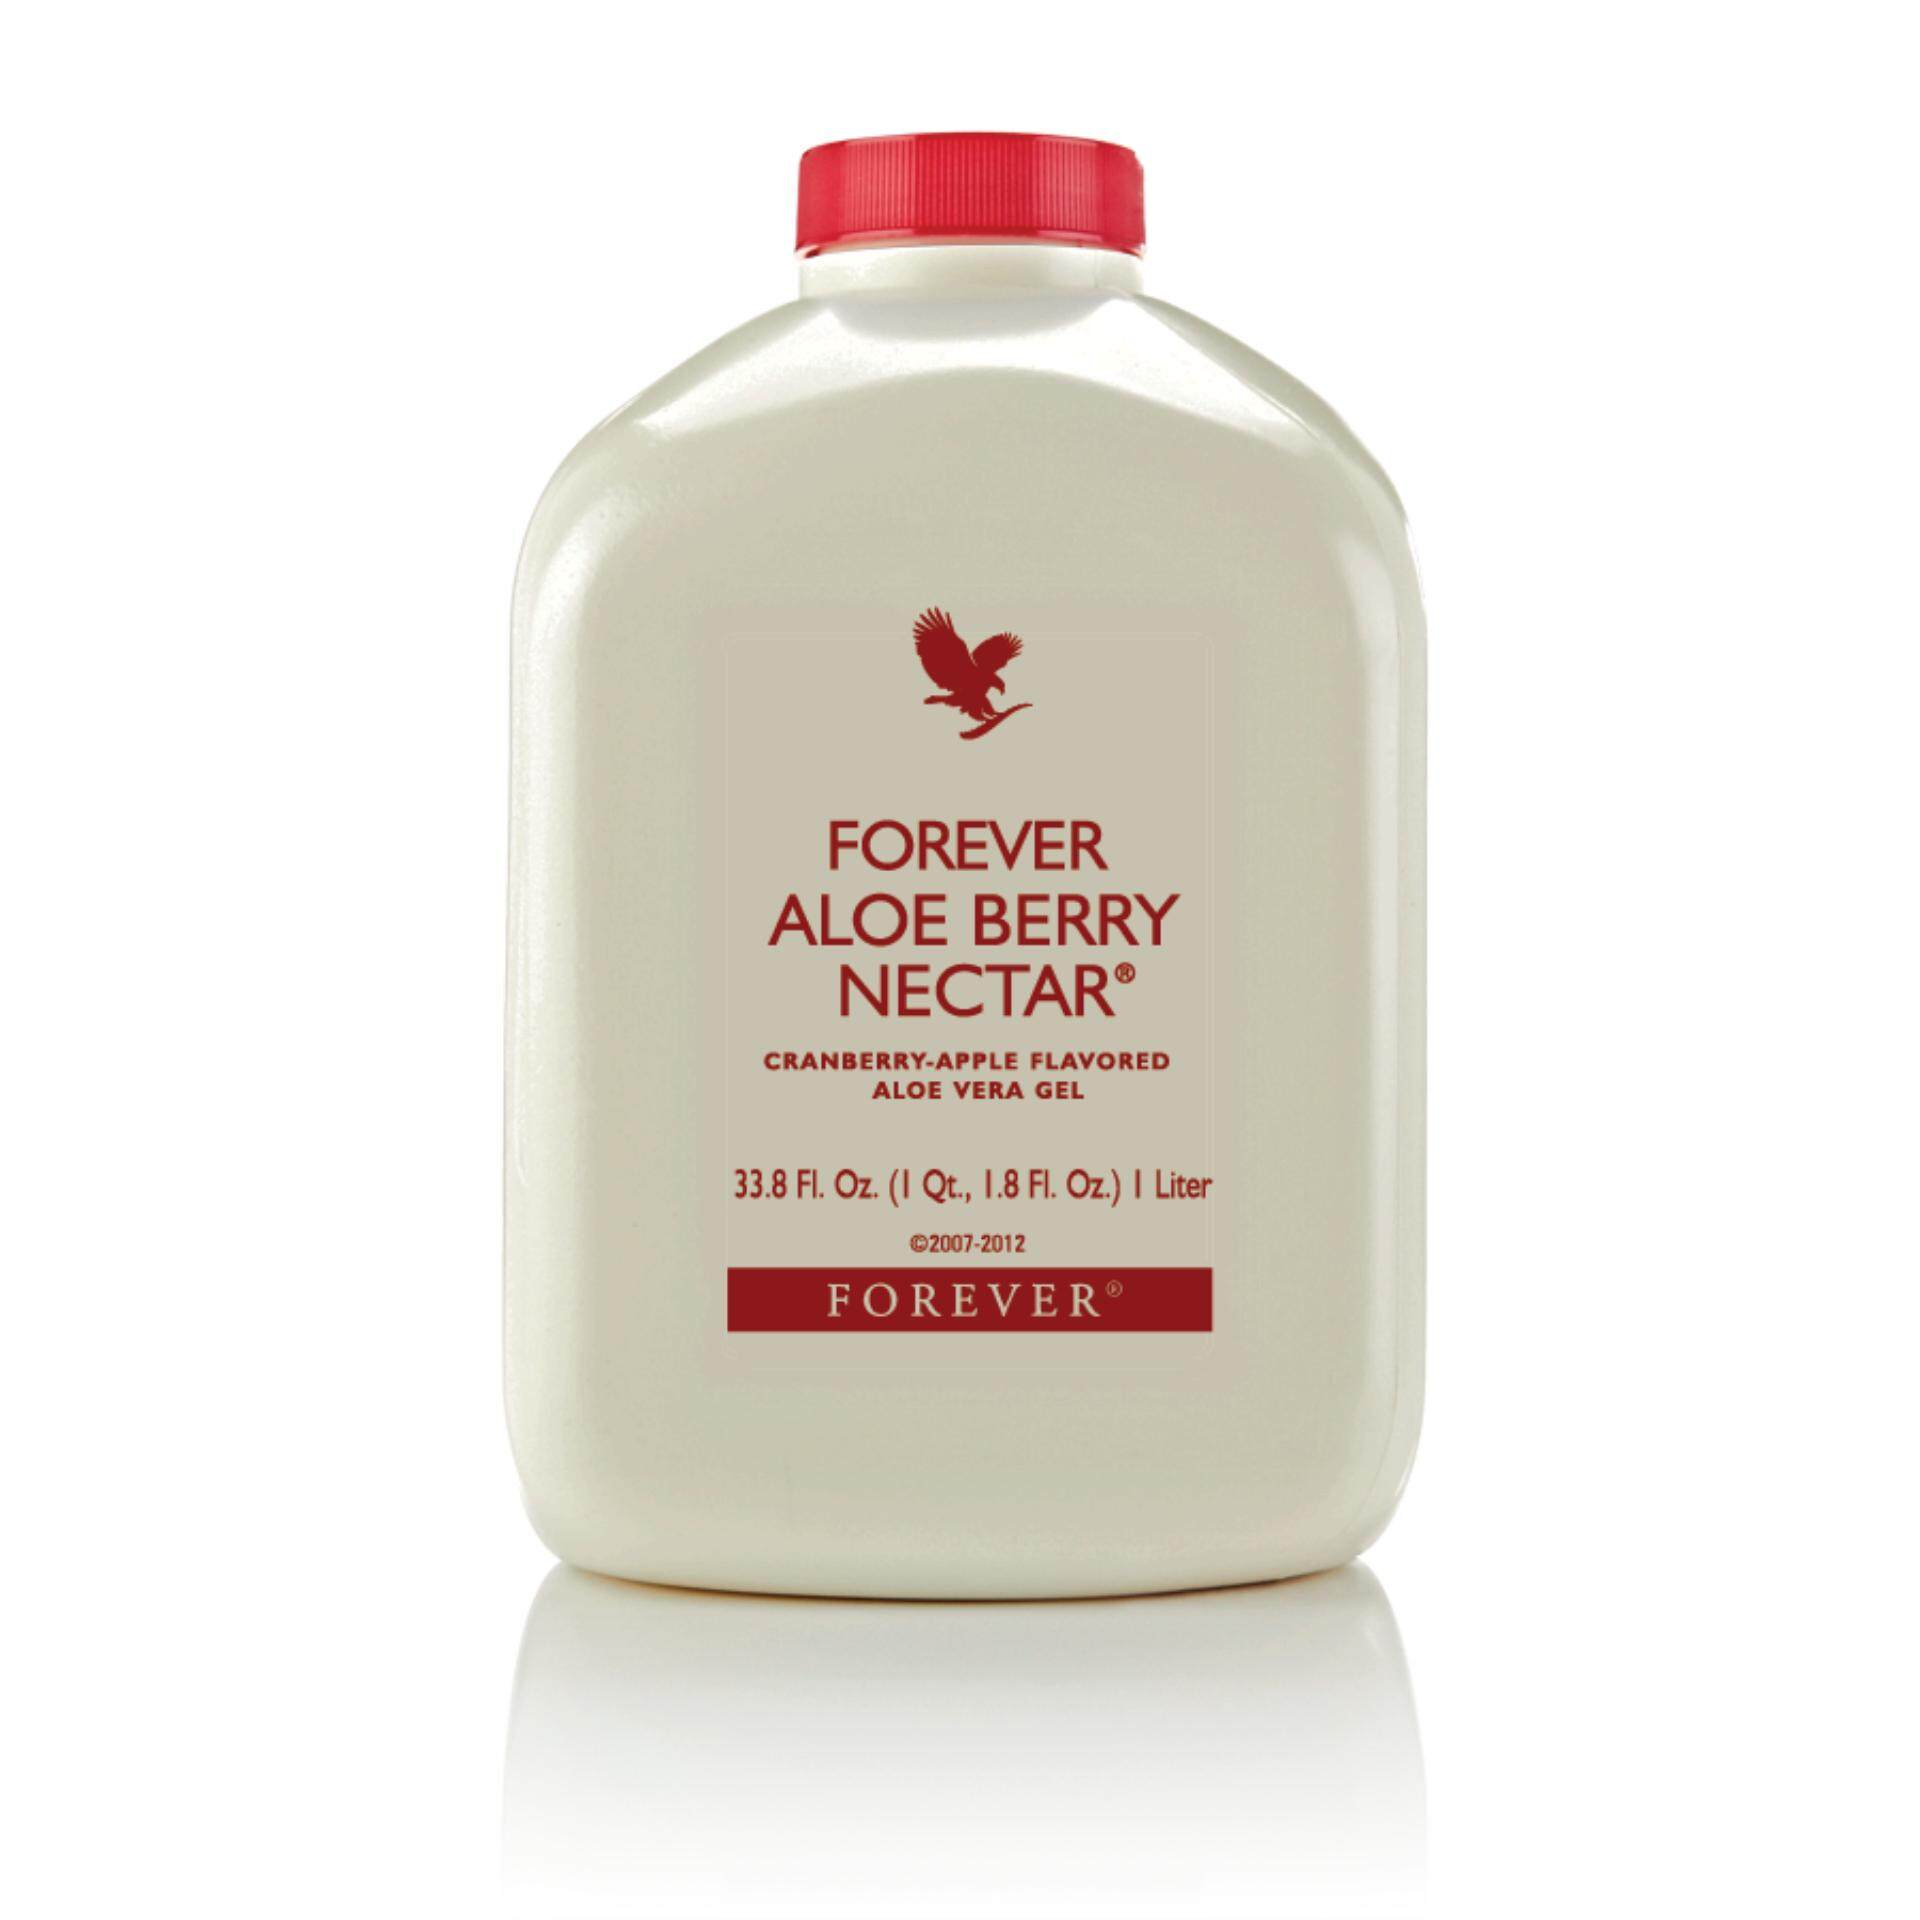 Skincare 2 U New Arrival Vico Bagoes 1 Liter Forever Aloe Berry Nectar For Womens Health